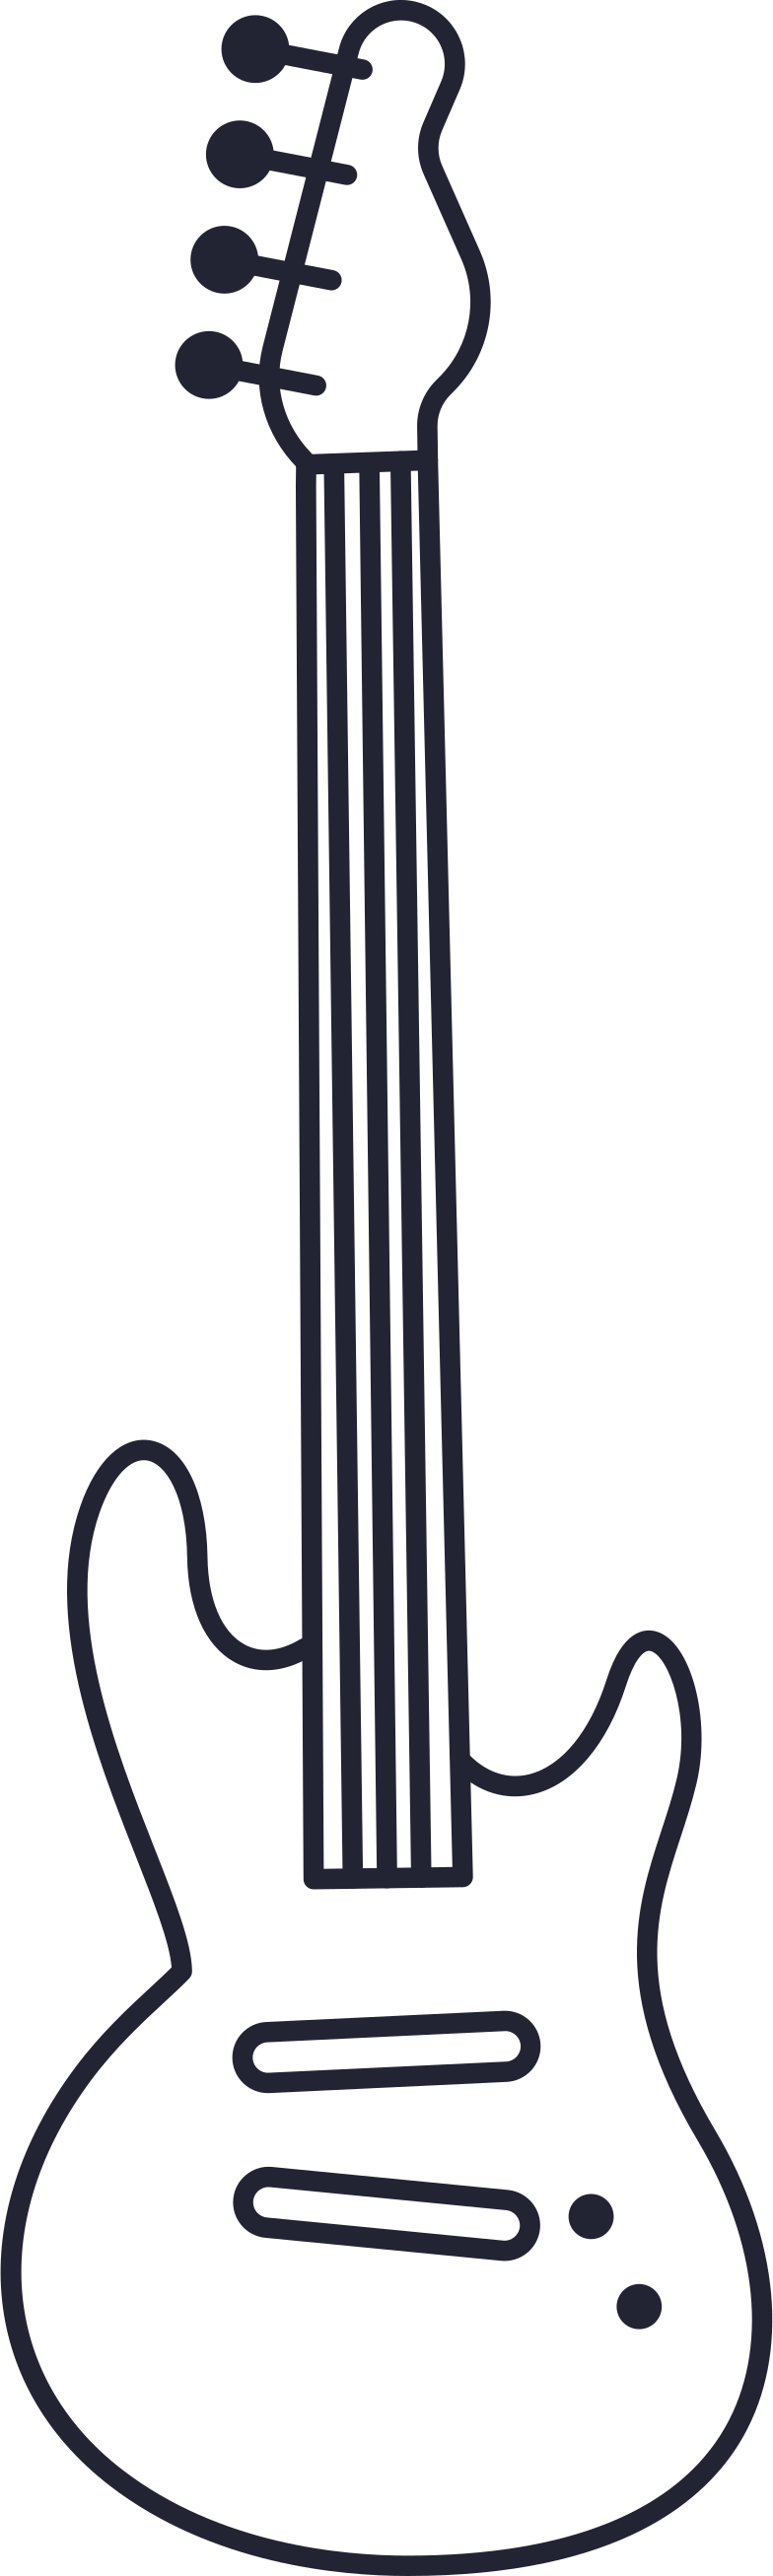 style electric guitar Vector images in PNG and SVG | Icons8 Illustrations